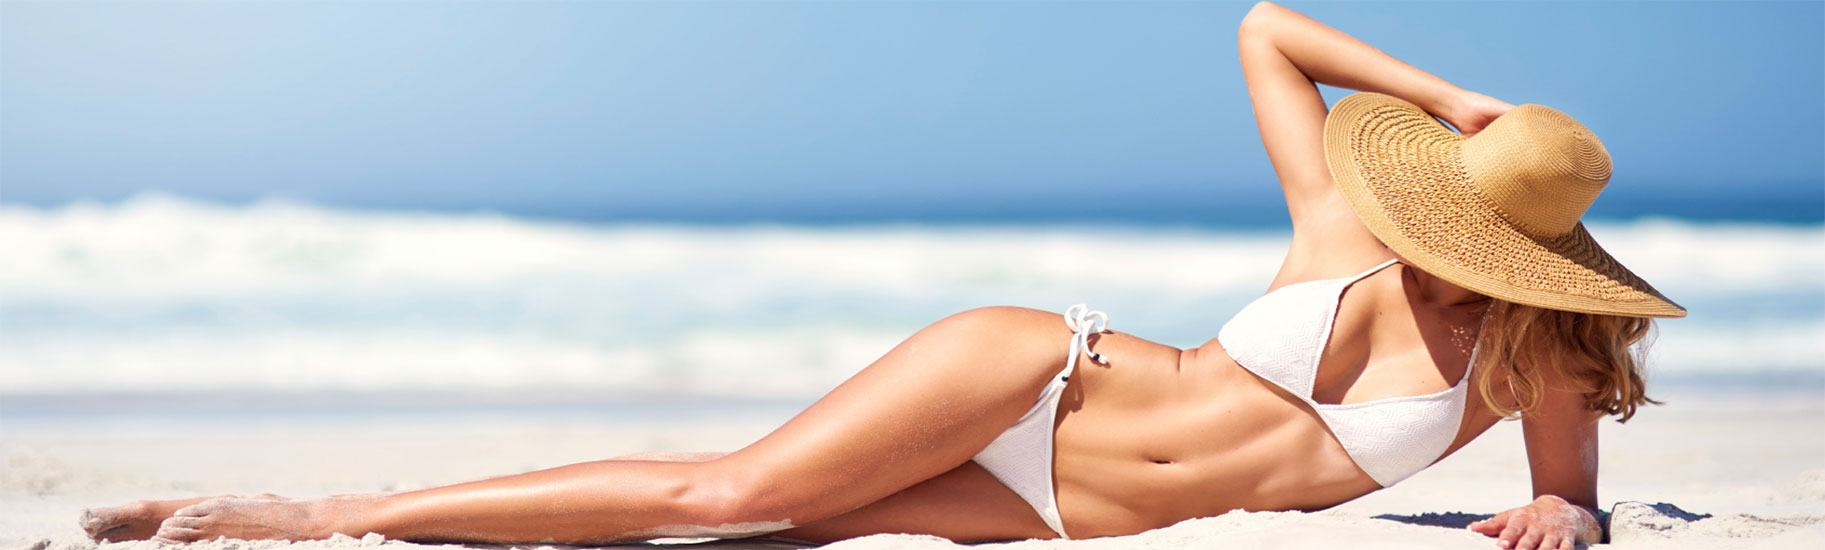 Tummy Tuck Surgery NYC | Long Island | Brazilian Butt Lift NYC